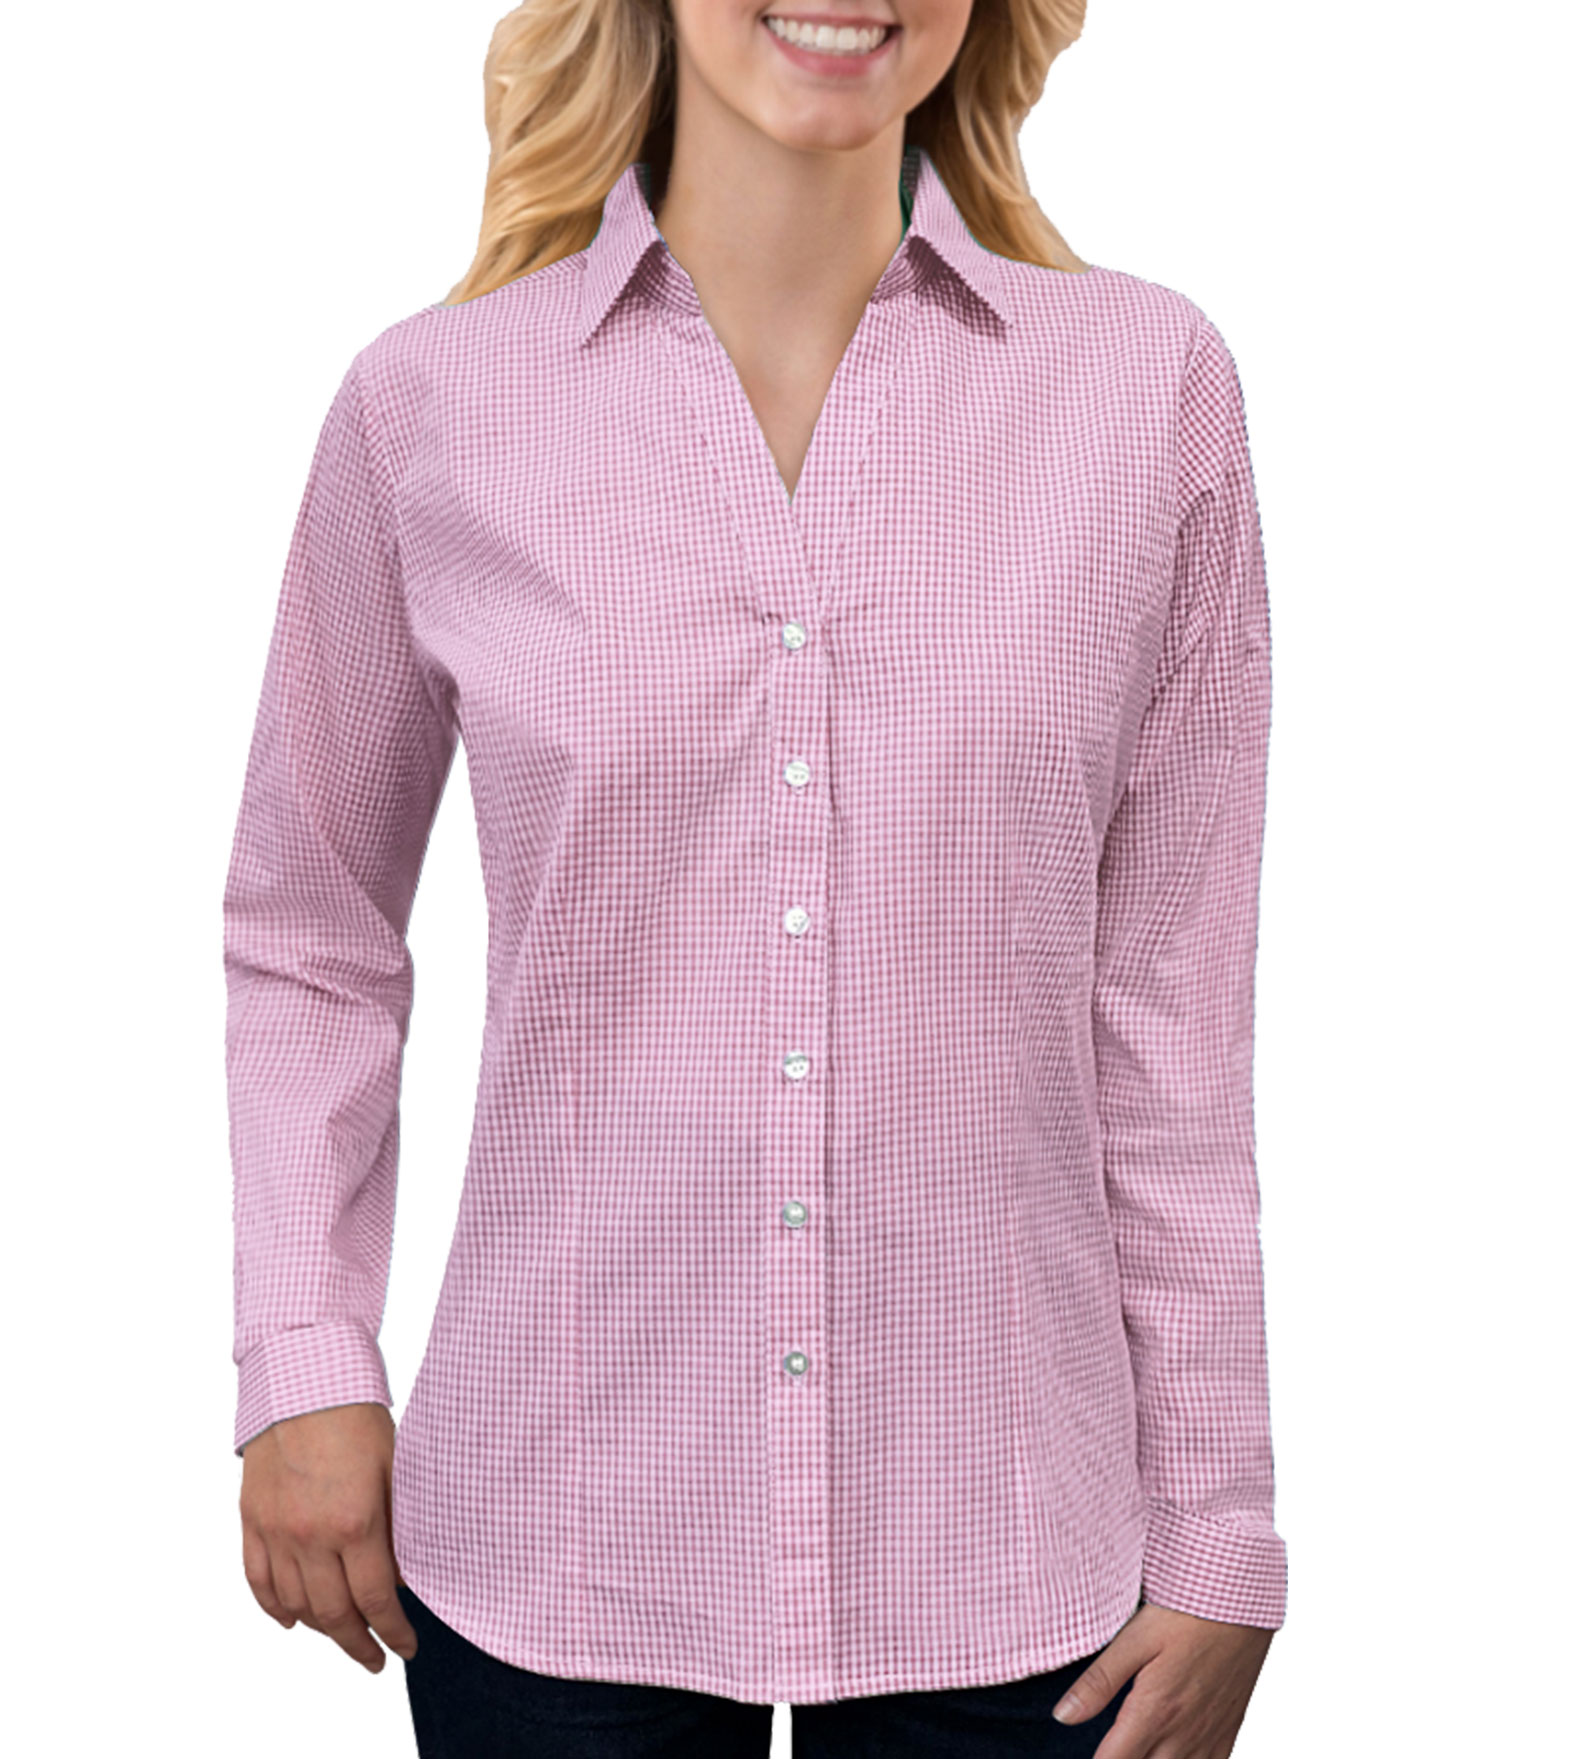 Ladies Long-Sleeve Gingham Check Shirt